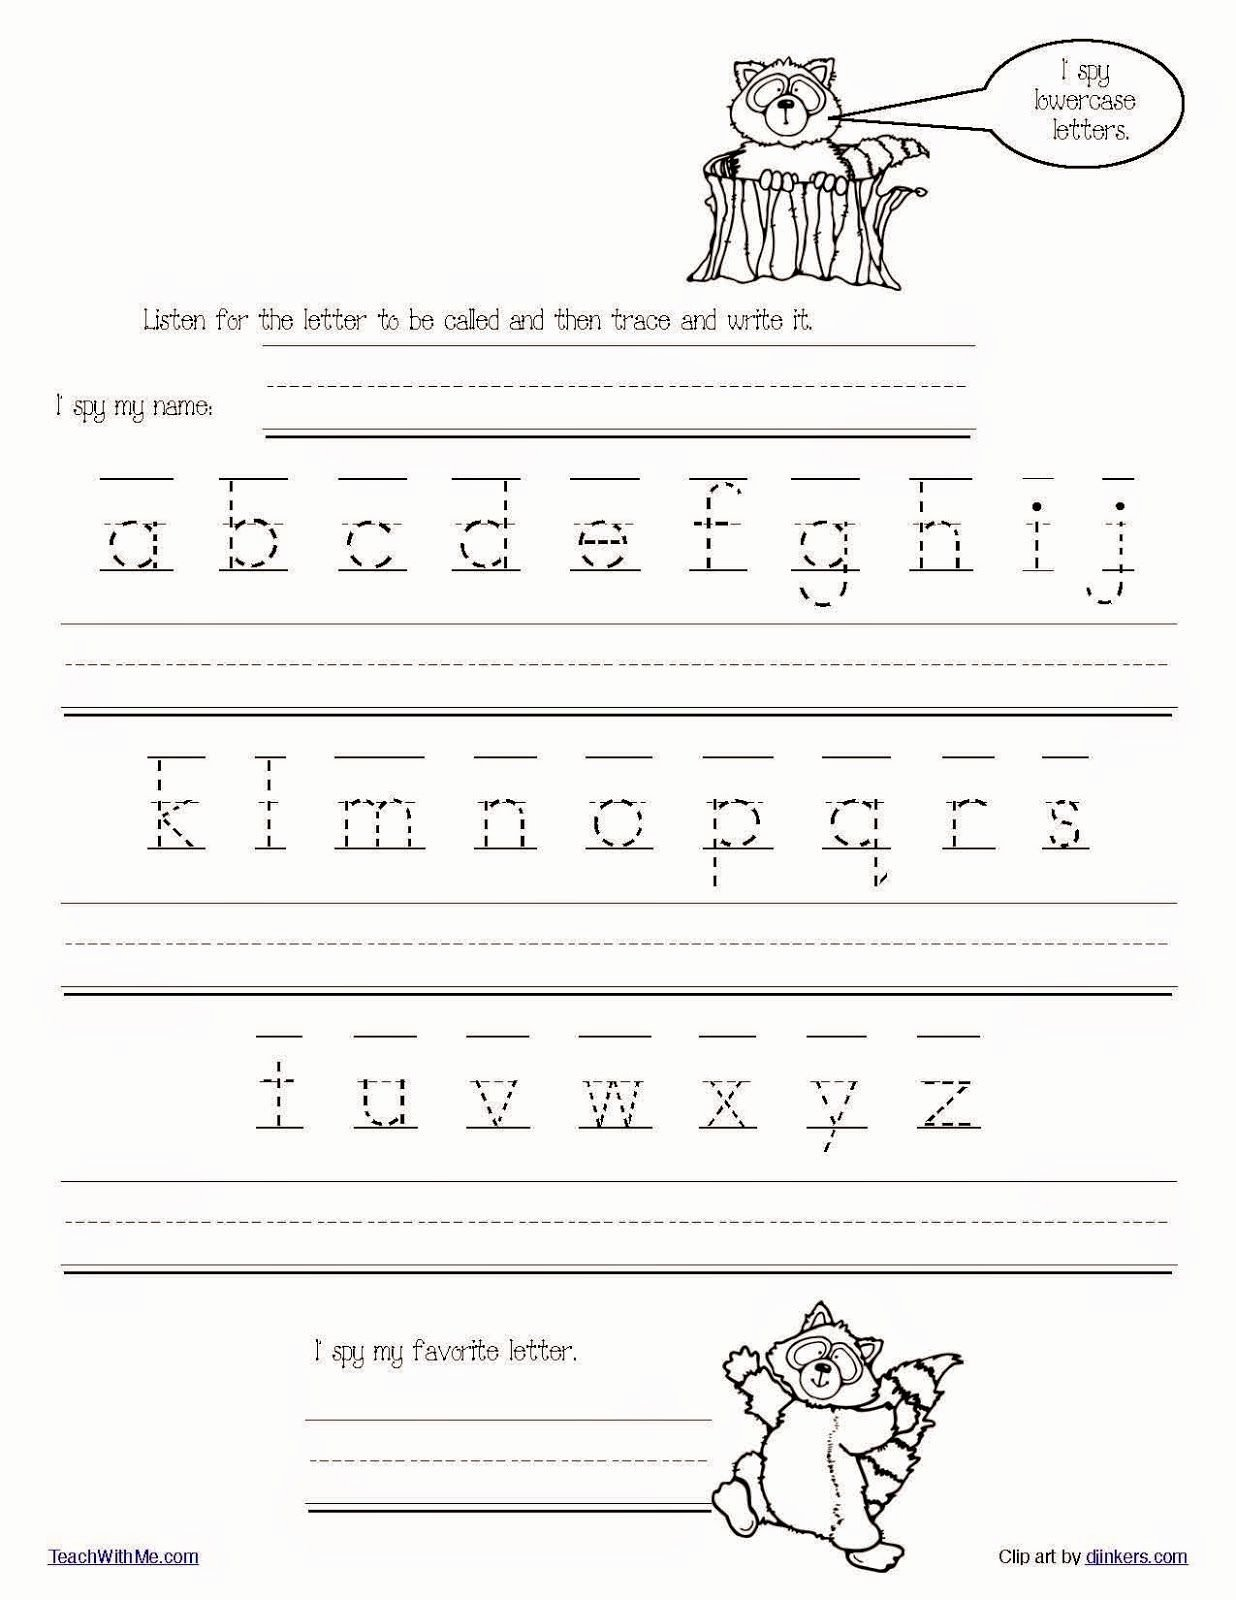 Free Printable Handwriting Worksheets for Preschoolers Printable Worksheets Math Worksheet Free Printable Handwriting